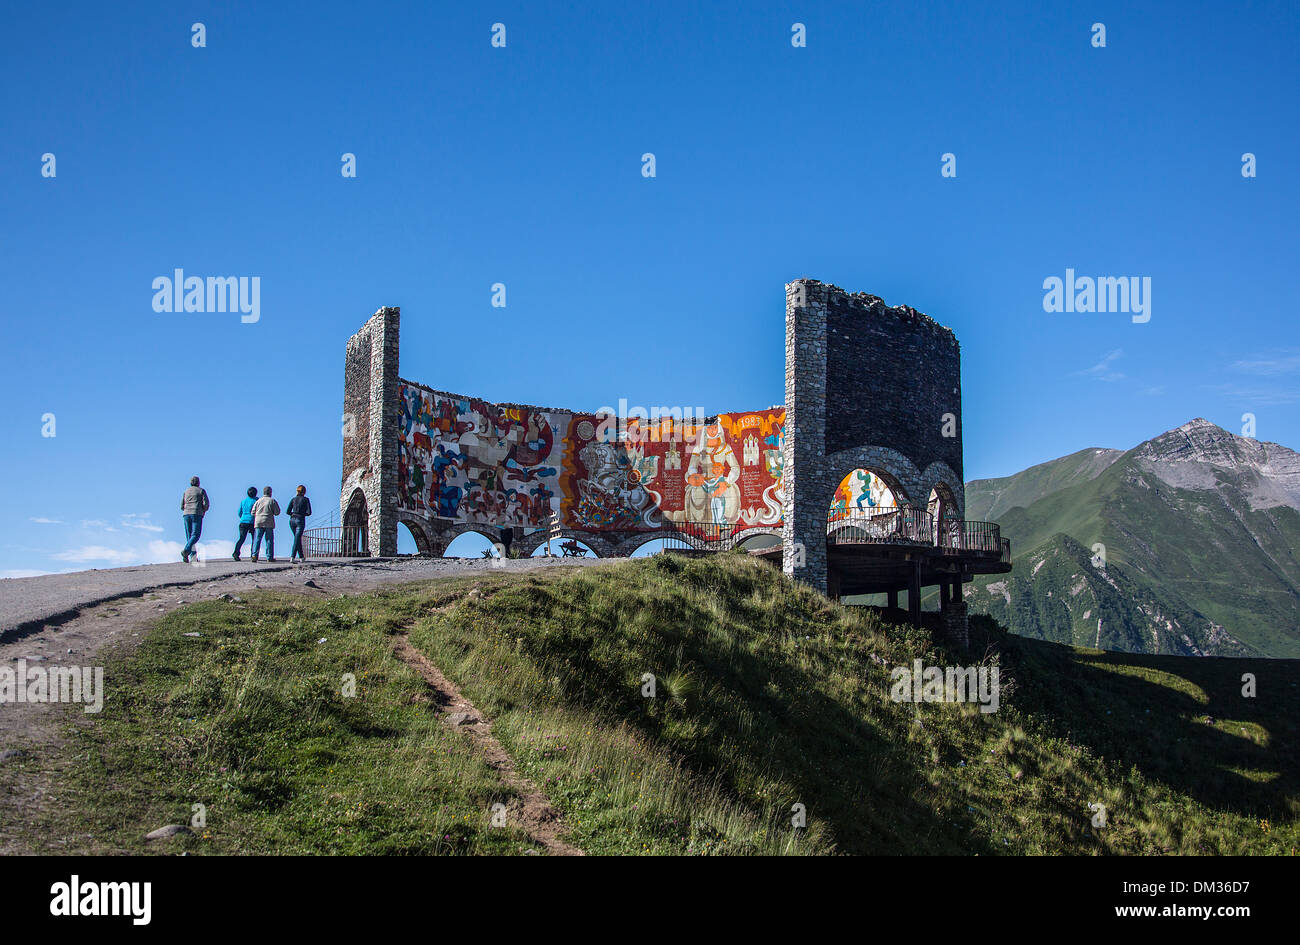 Gudauri Russian Caucasus colourful friendship Georgia Caucasus Eurasia lookout monument mountains pass range top - Stock Image